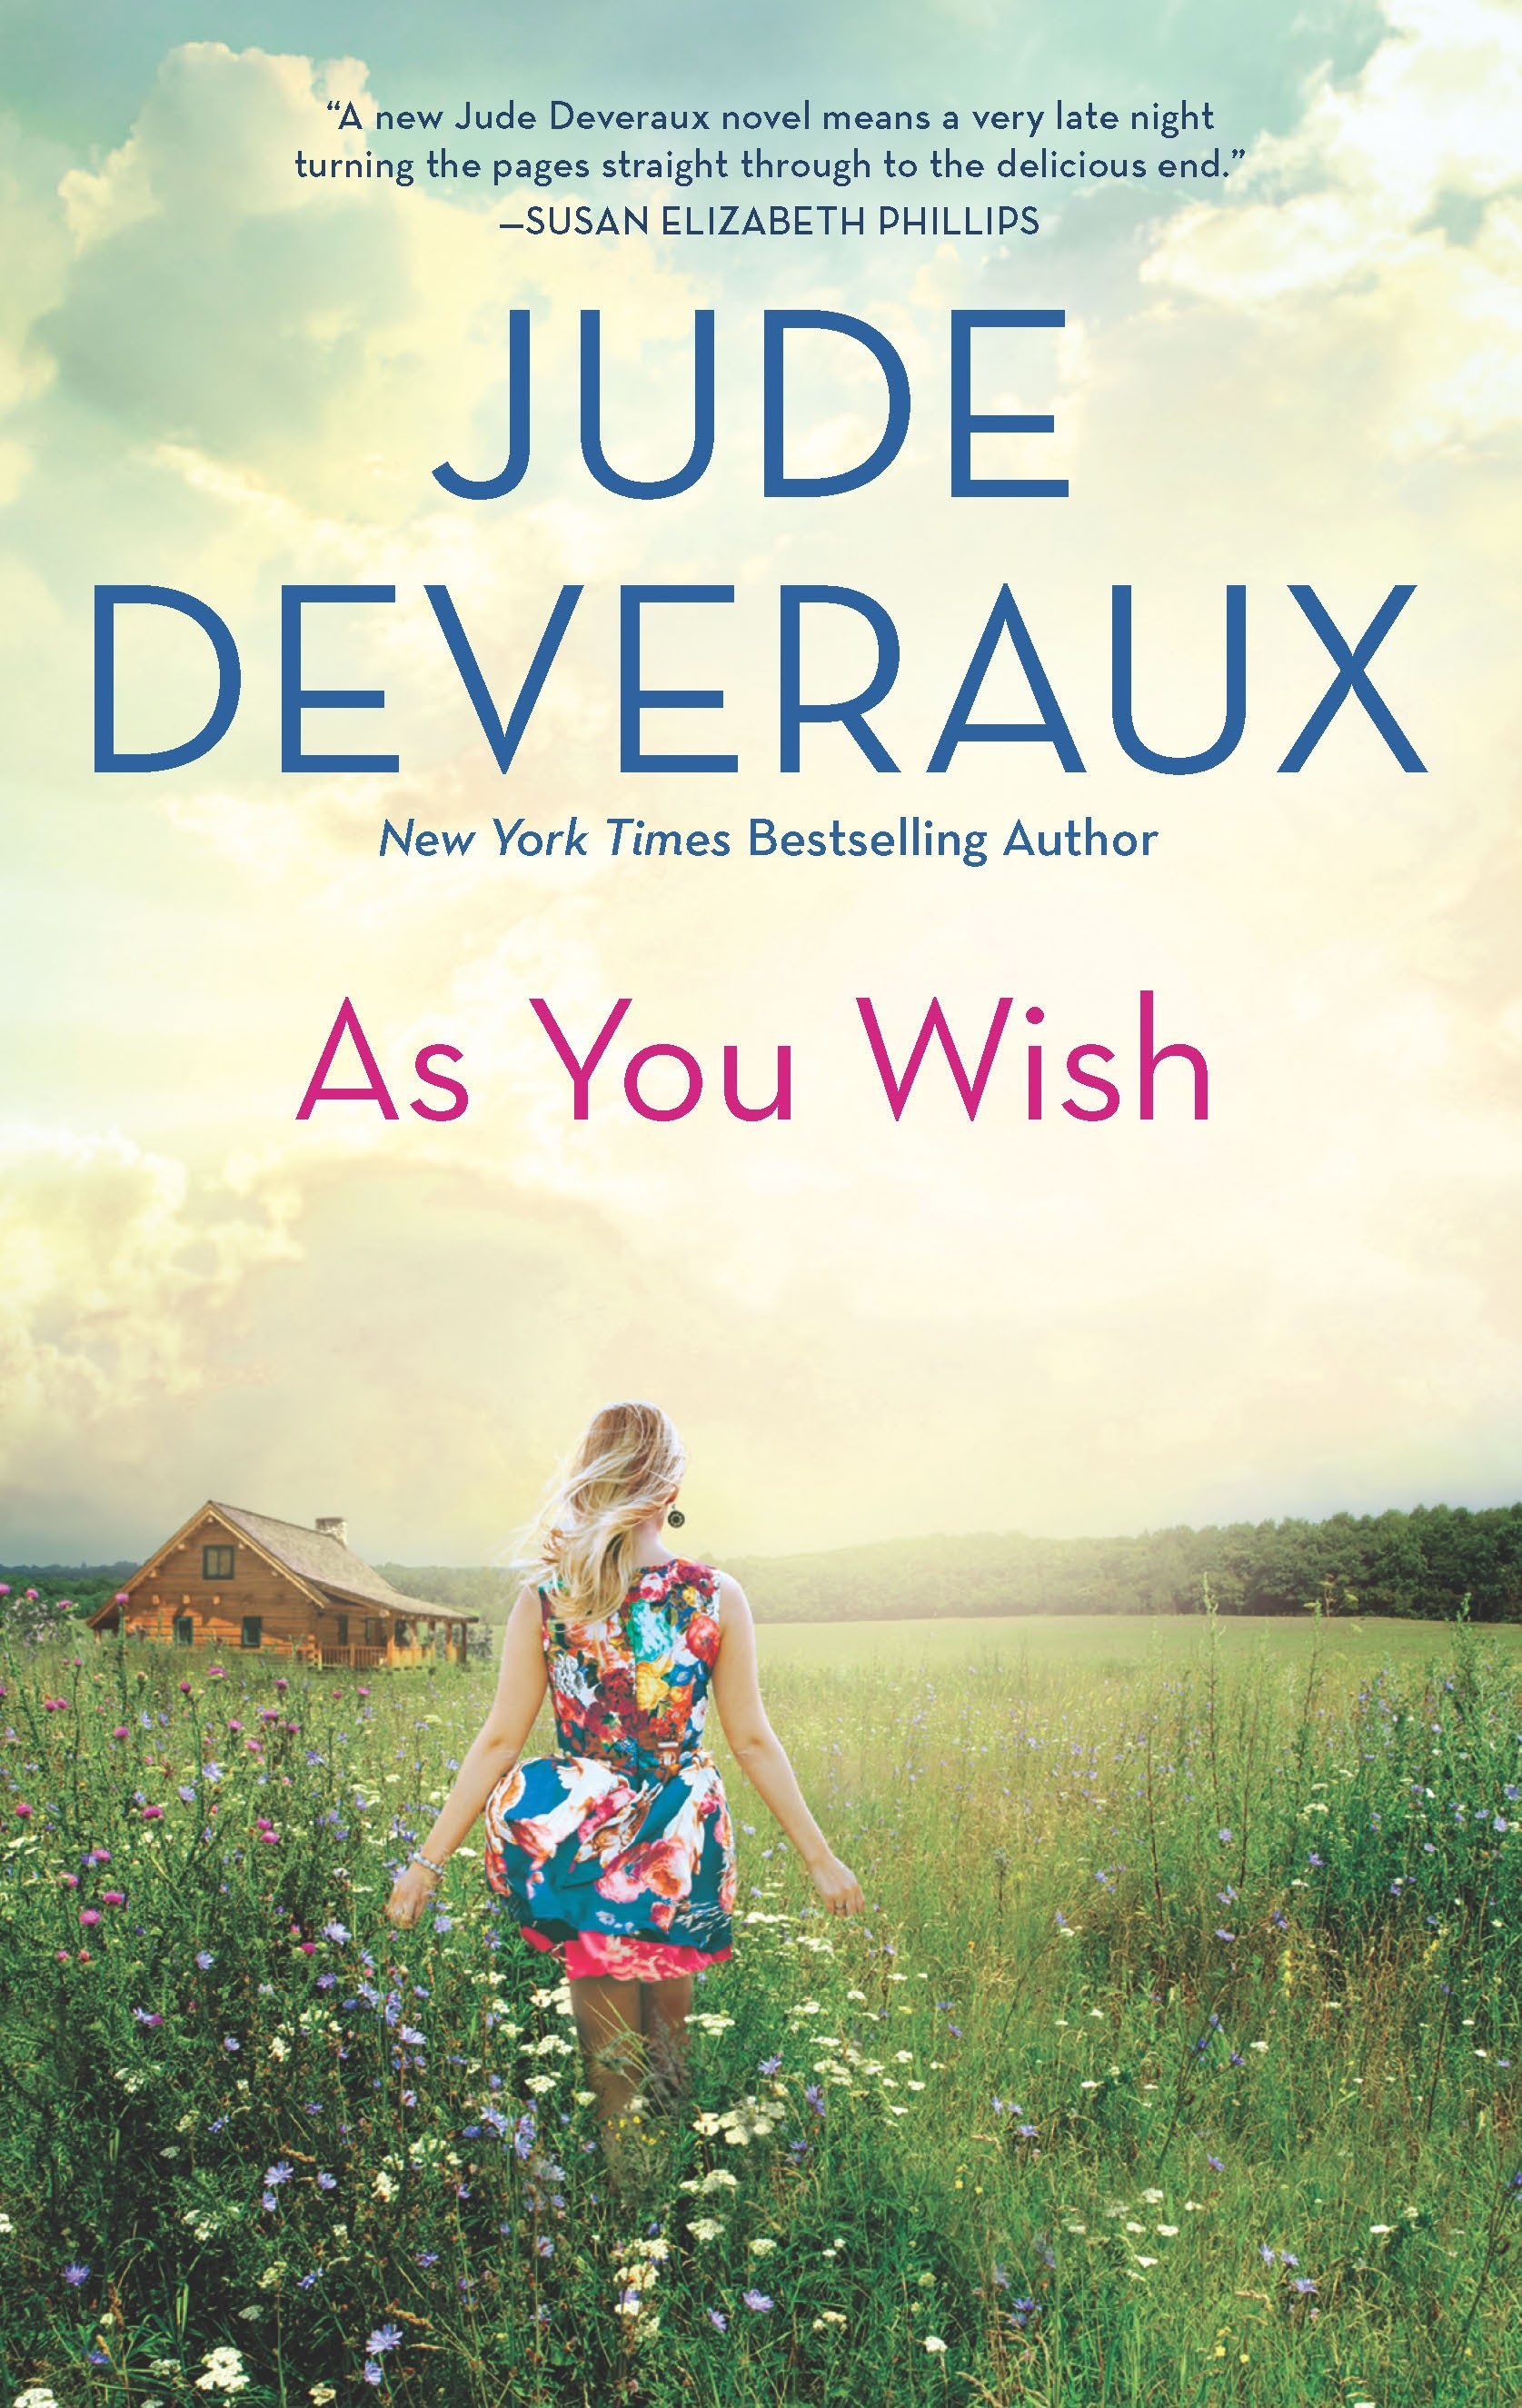 Cover Image of As You Wish